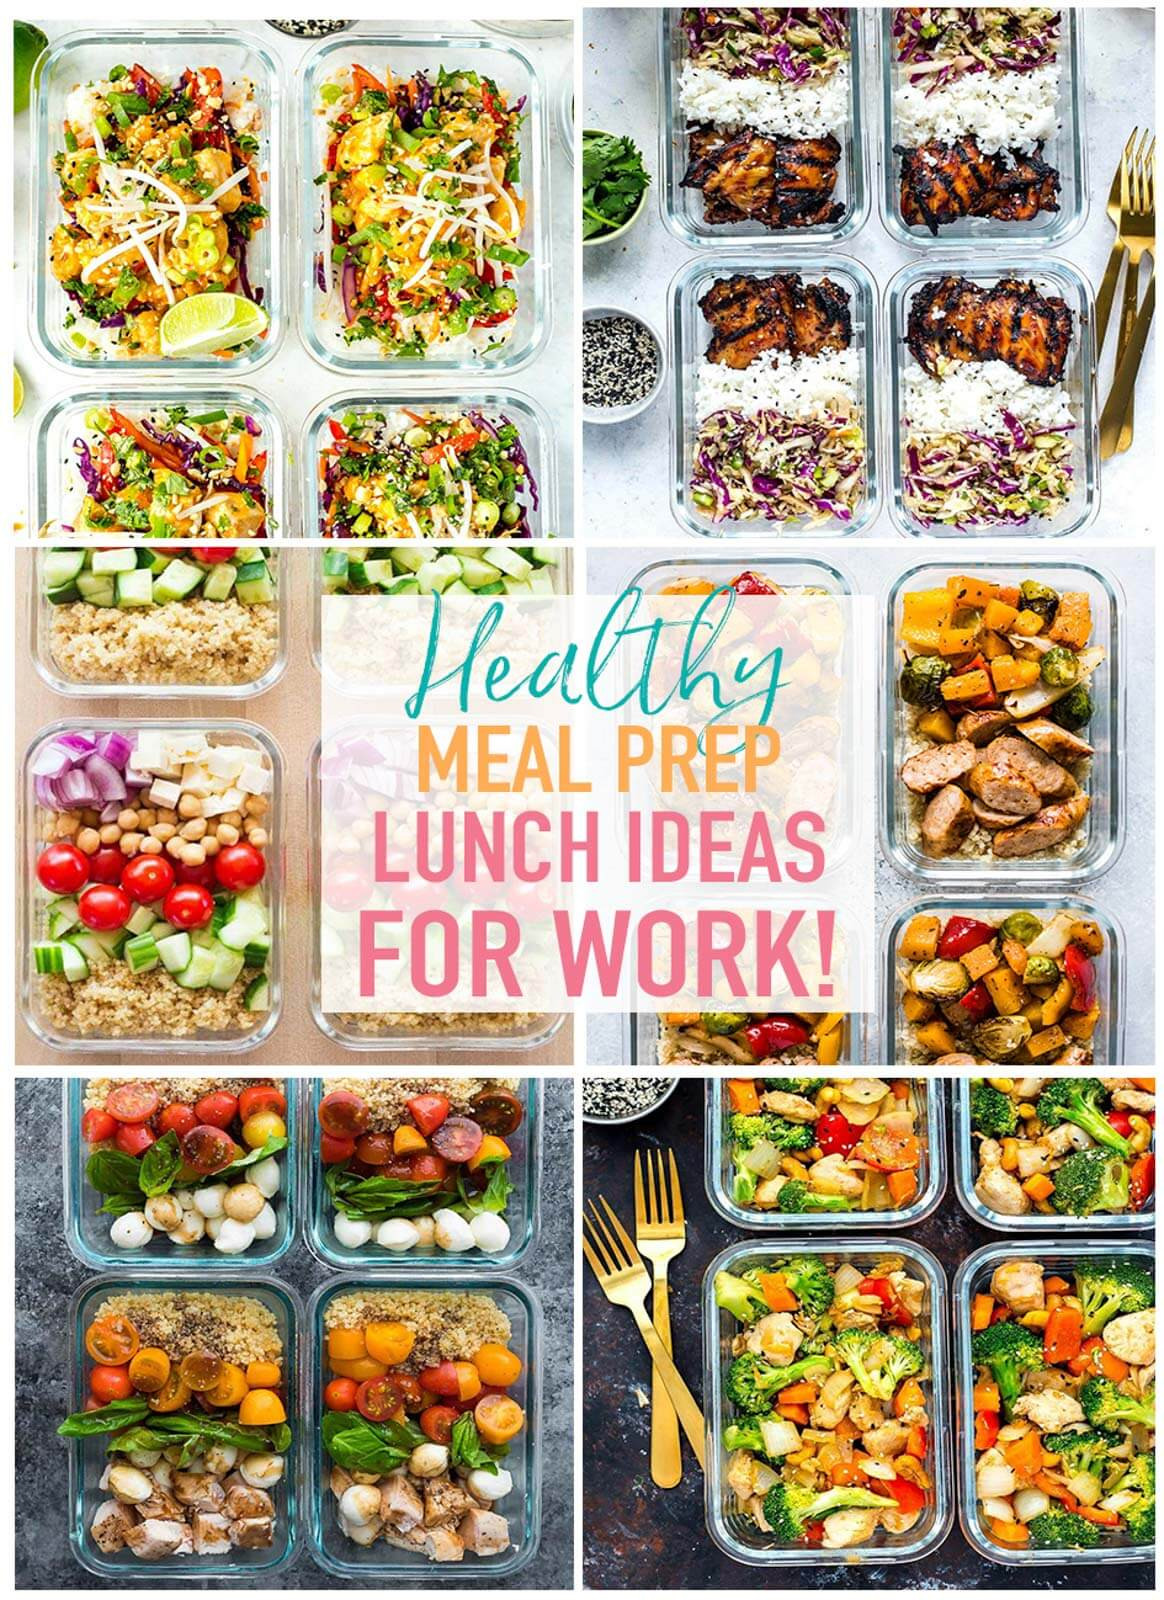 Healthy Work Lunches  20 Easy Healthy Meal Prep Lunch Ideas for Work The Girl